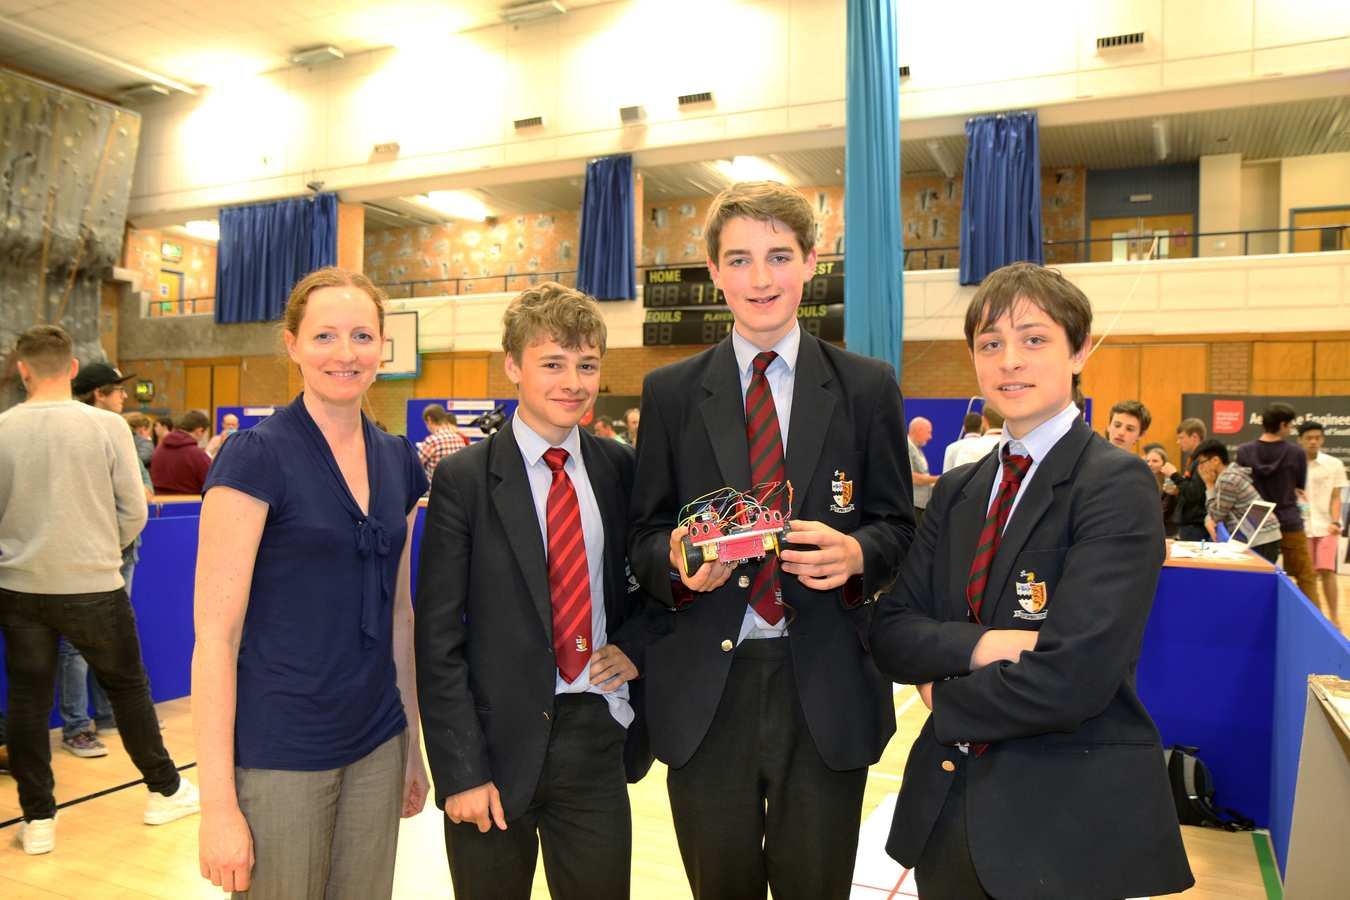 Amy Finney, computer teacher, Adam Robarts, 16, Ollie Stubbs, 15, and Alex West, 14, of Bristol Grammar School.